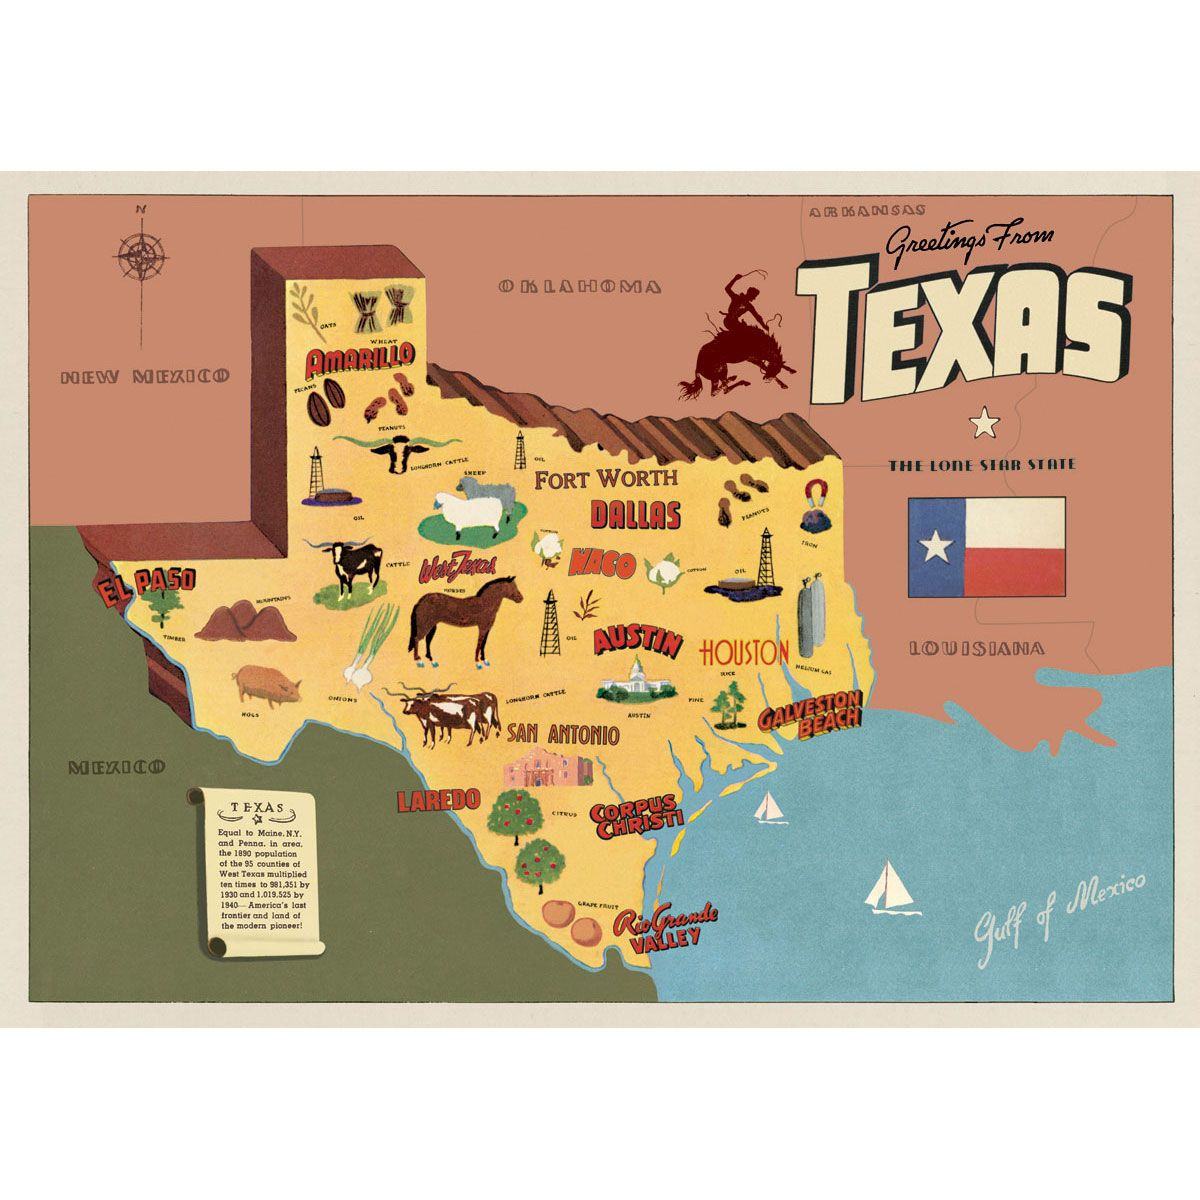 This Texas Sightseeing Map Souvenir Vintage Style Poster Is - Texas Sightseeing Map